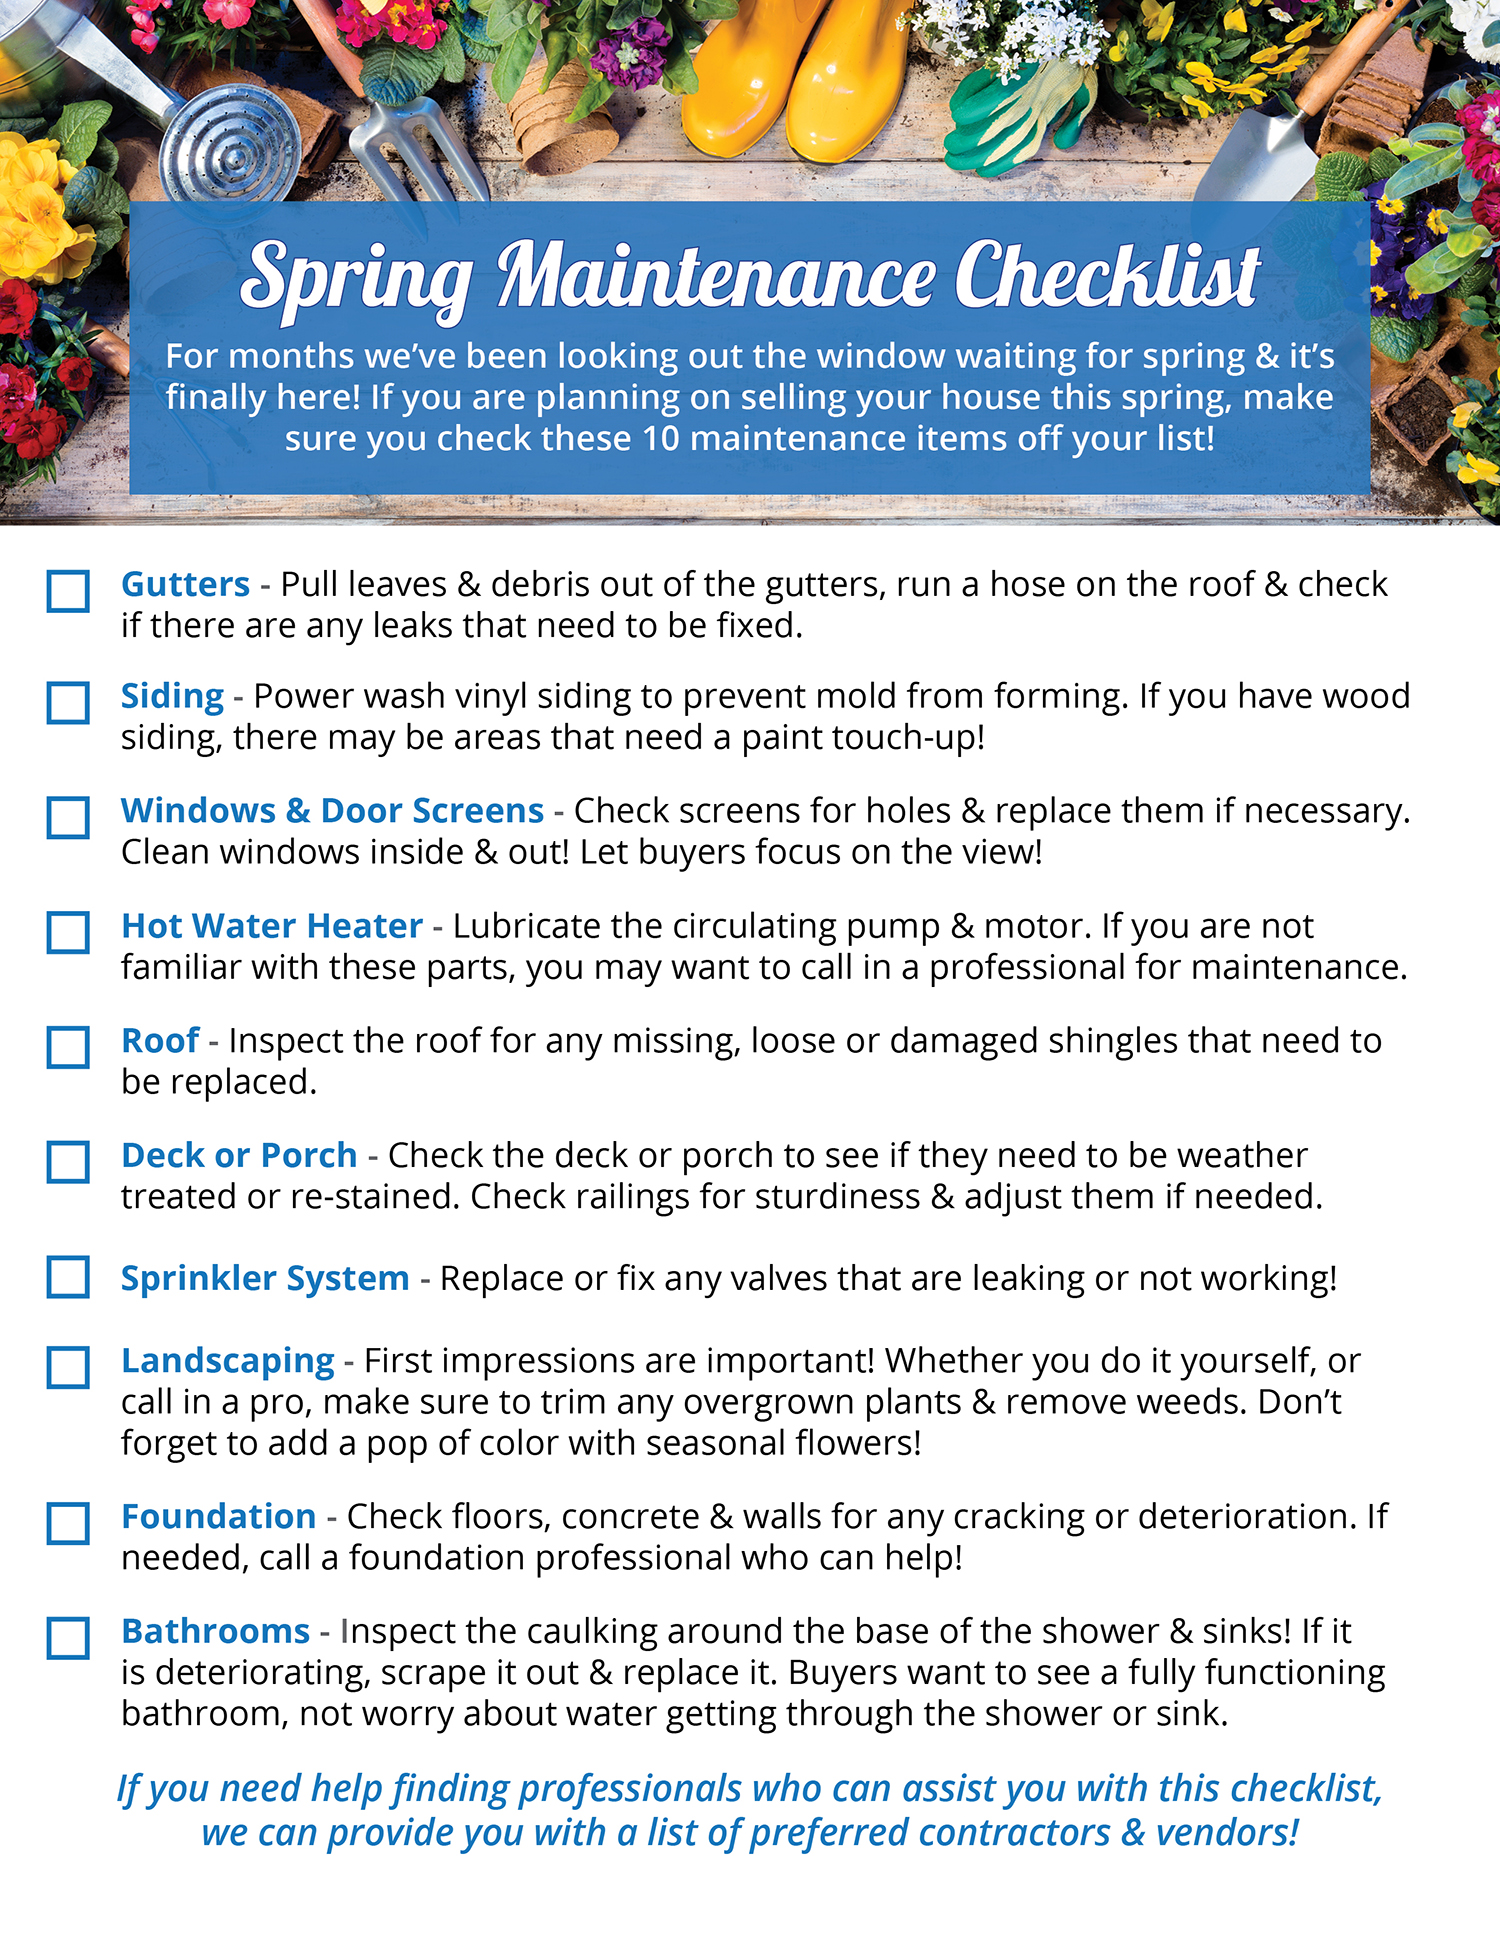 Your Home's Spring Maintenance Checklist  | Simplifying The Market